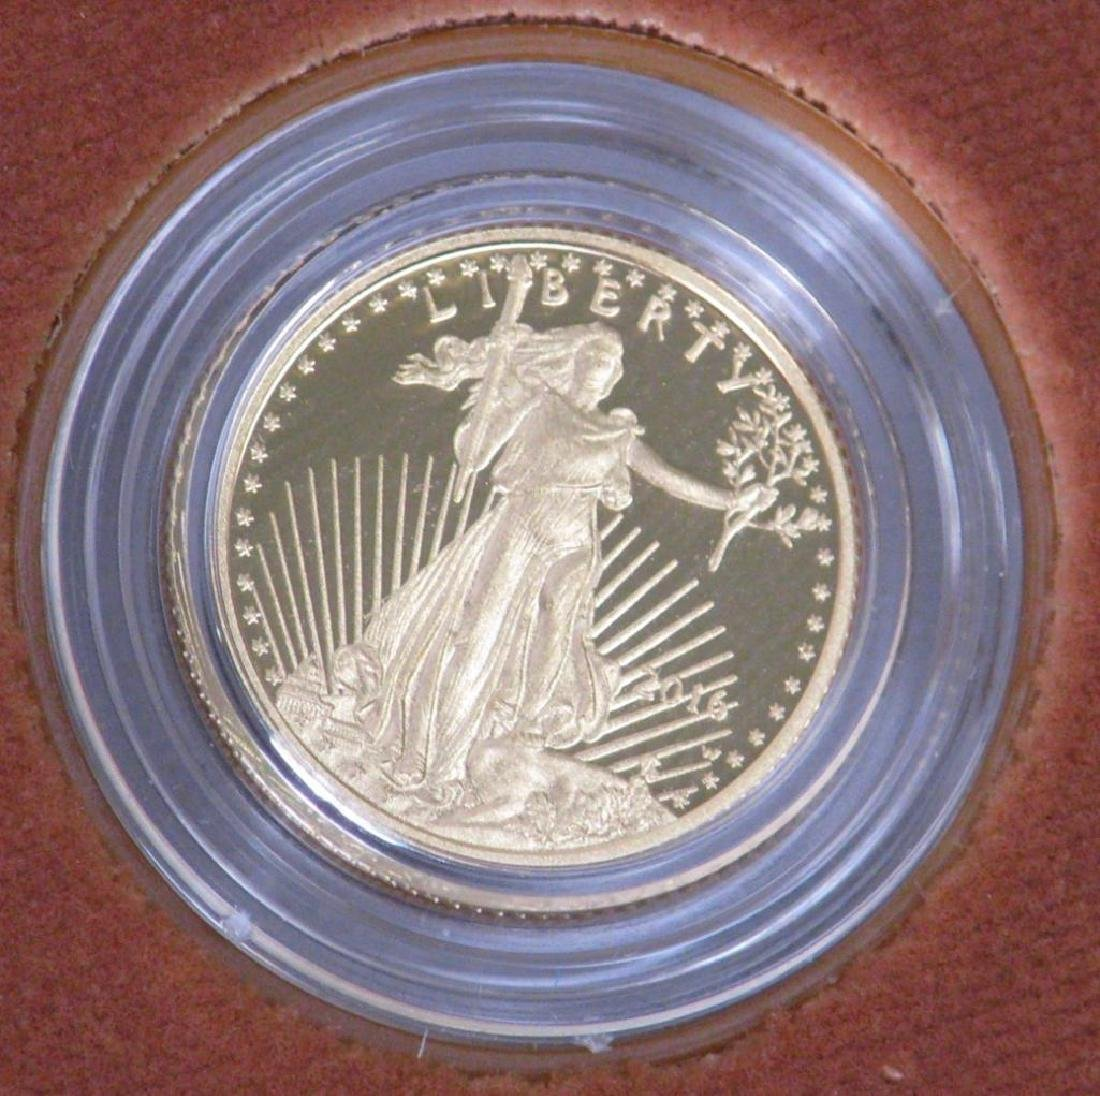 2016 American Eagle Gold Proof Coin